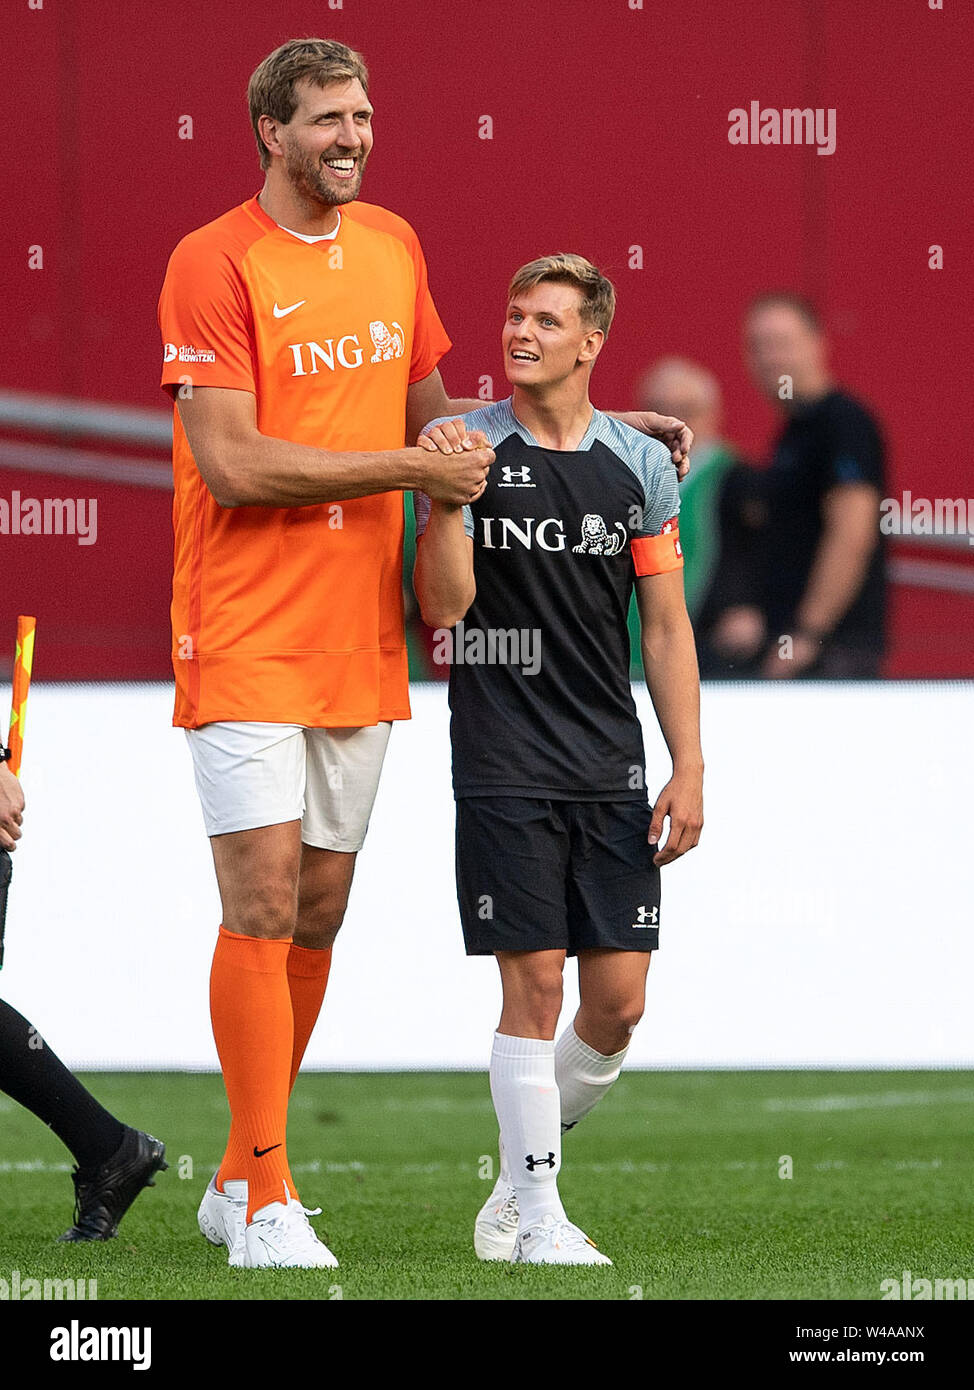 Leverkusen, Germany. 21st July, 2019. Soccer: Benefit soccer game 'Champions for Charity' in the BayArena. Former basketball player Dirk Nowitzki (l) and racing driver Mick Schumacher clap their hands during the match. Credit: Marius Becker/dpa/Alamy Live News - Stock Image